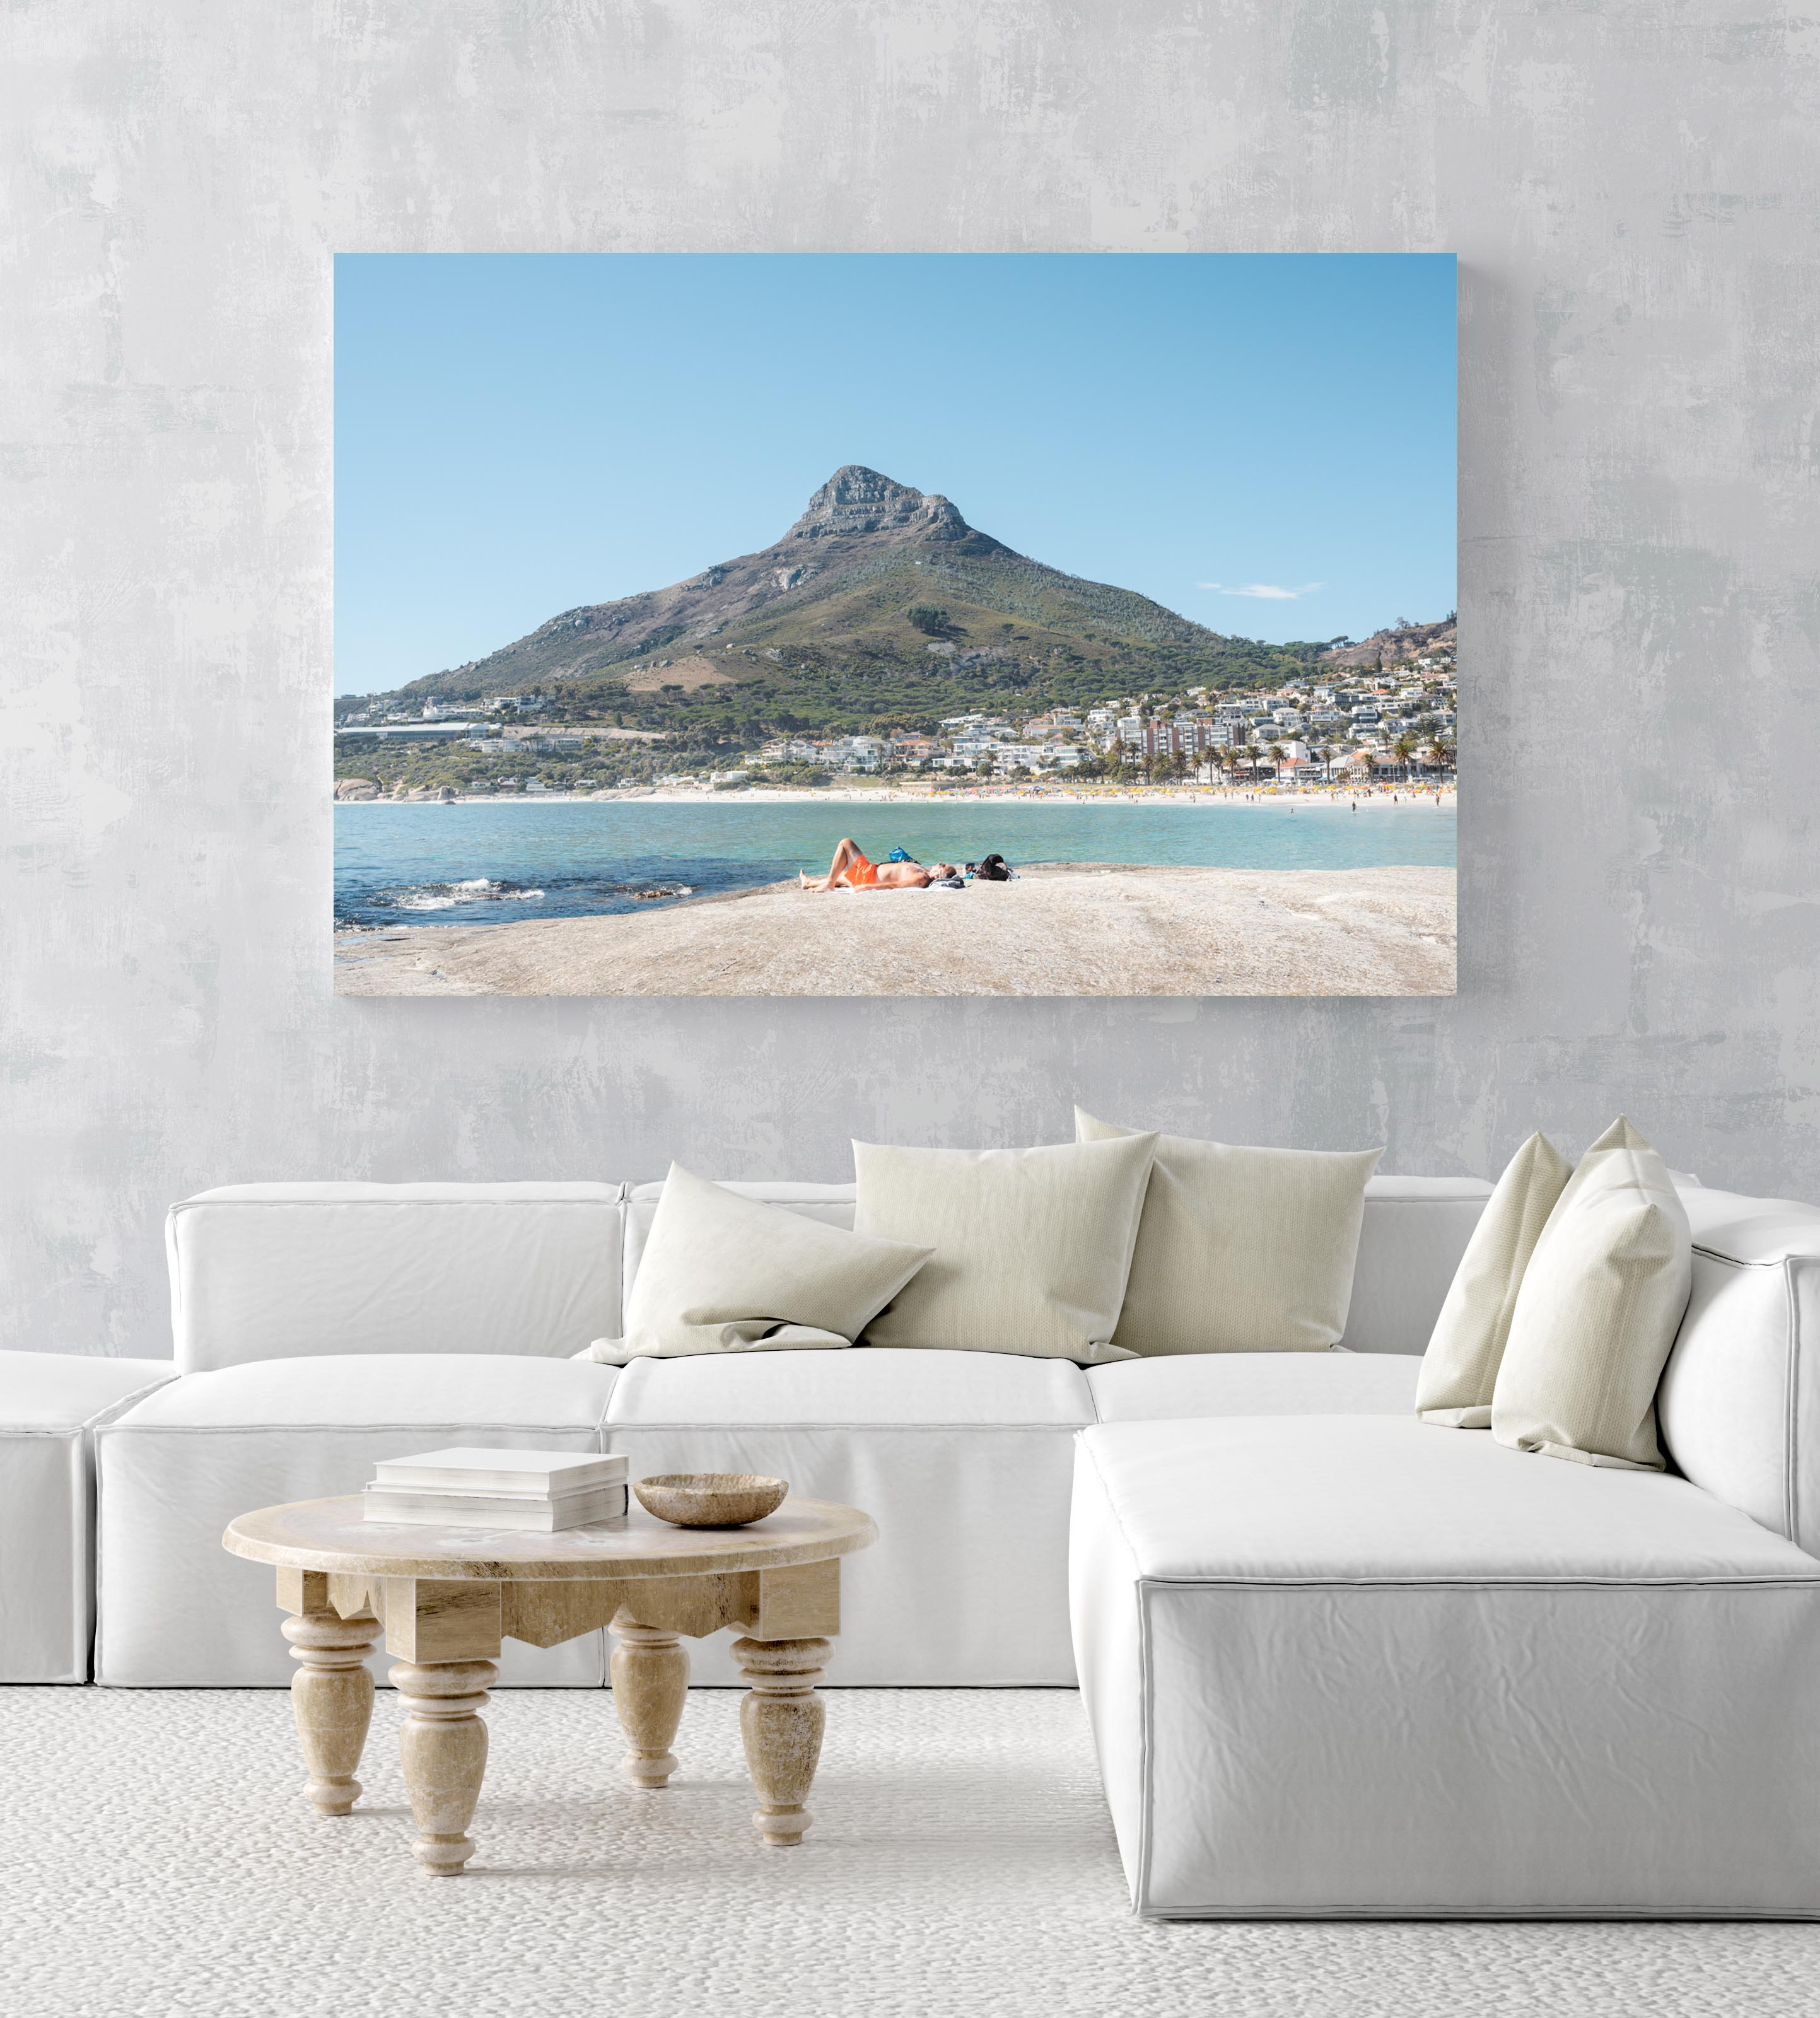 Old man lying on rock at Camps Bay beach below lions head in an acrylic/perspex frame